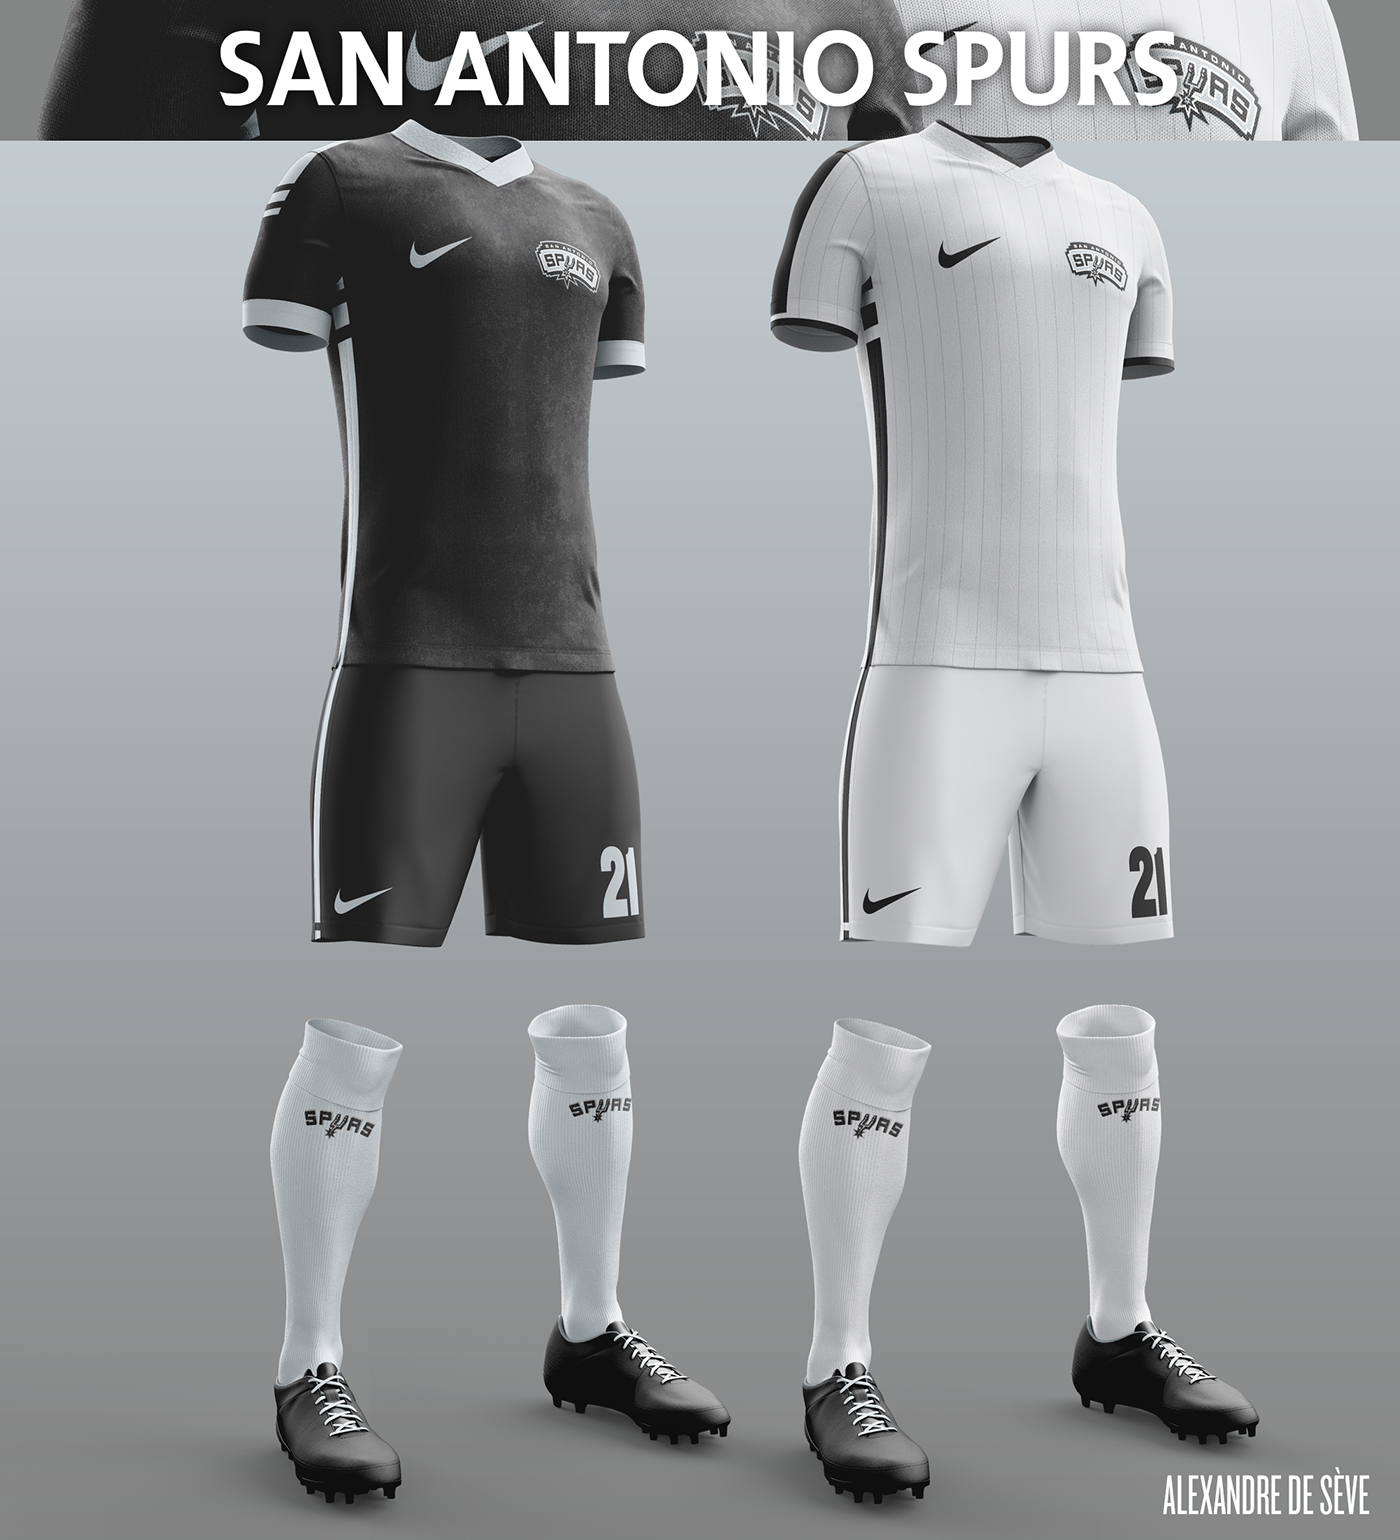 Talisman & Co. | San Antonio Spurs Soccer Concept Kit